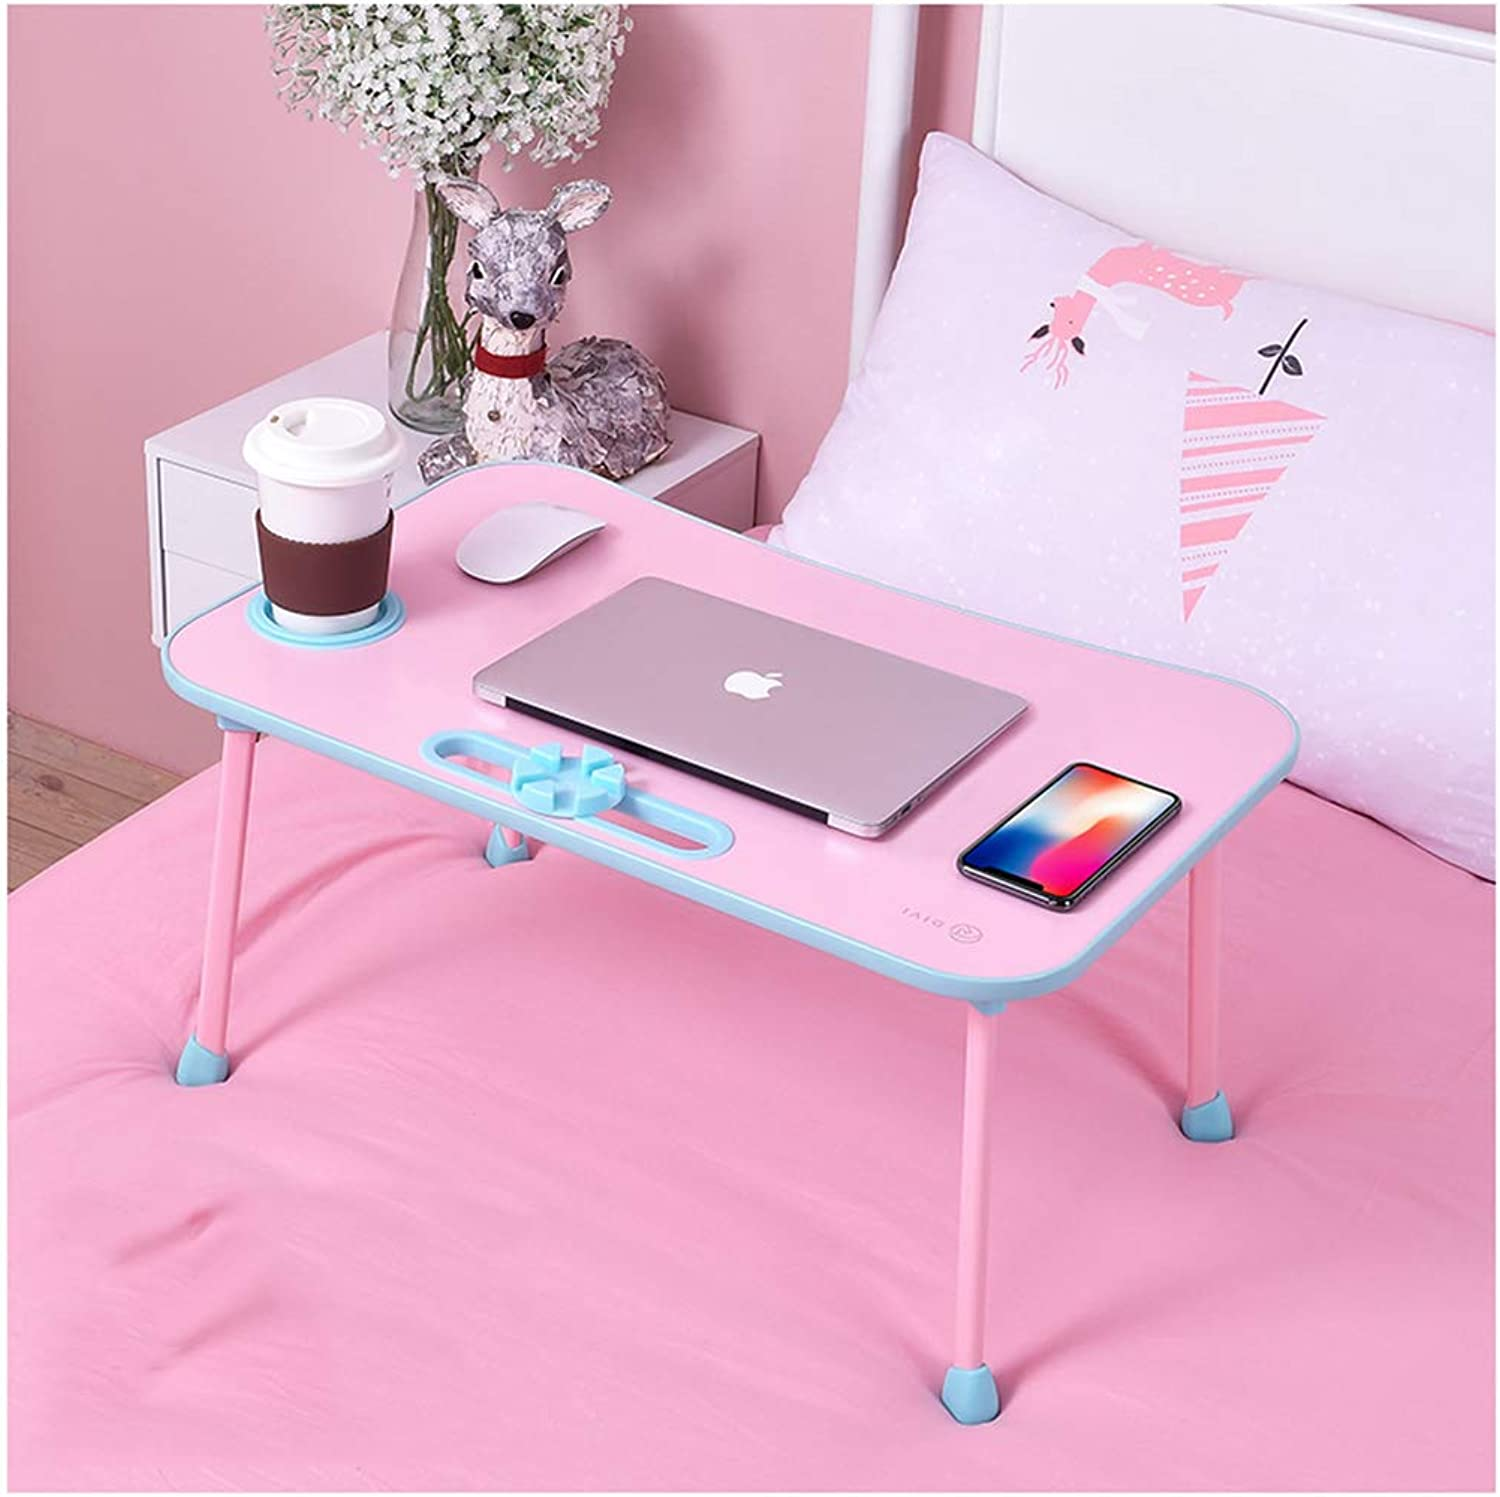 Folding Table Solid Wood Foldable Multi-Functional Bed Lazy Desk Foldable-College Dormitory Artifact Notebook Study Computer Table (color   Pink)